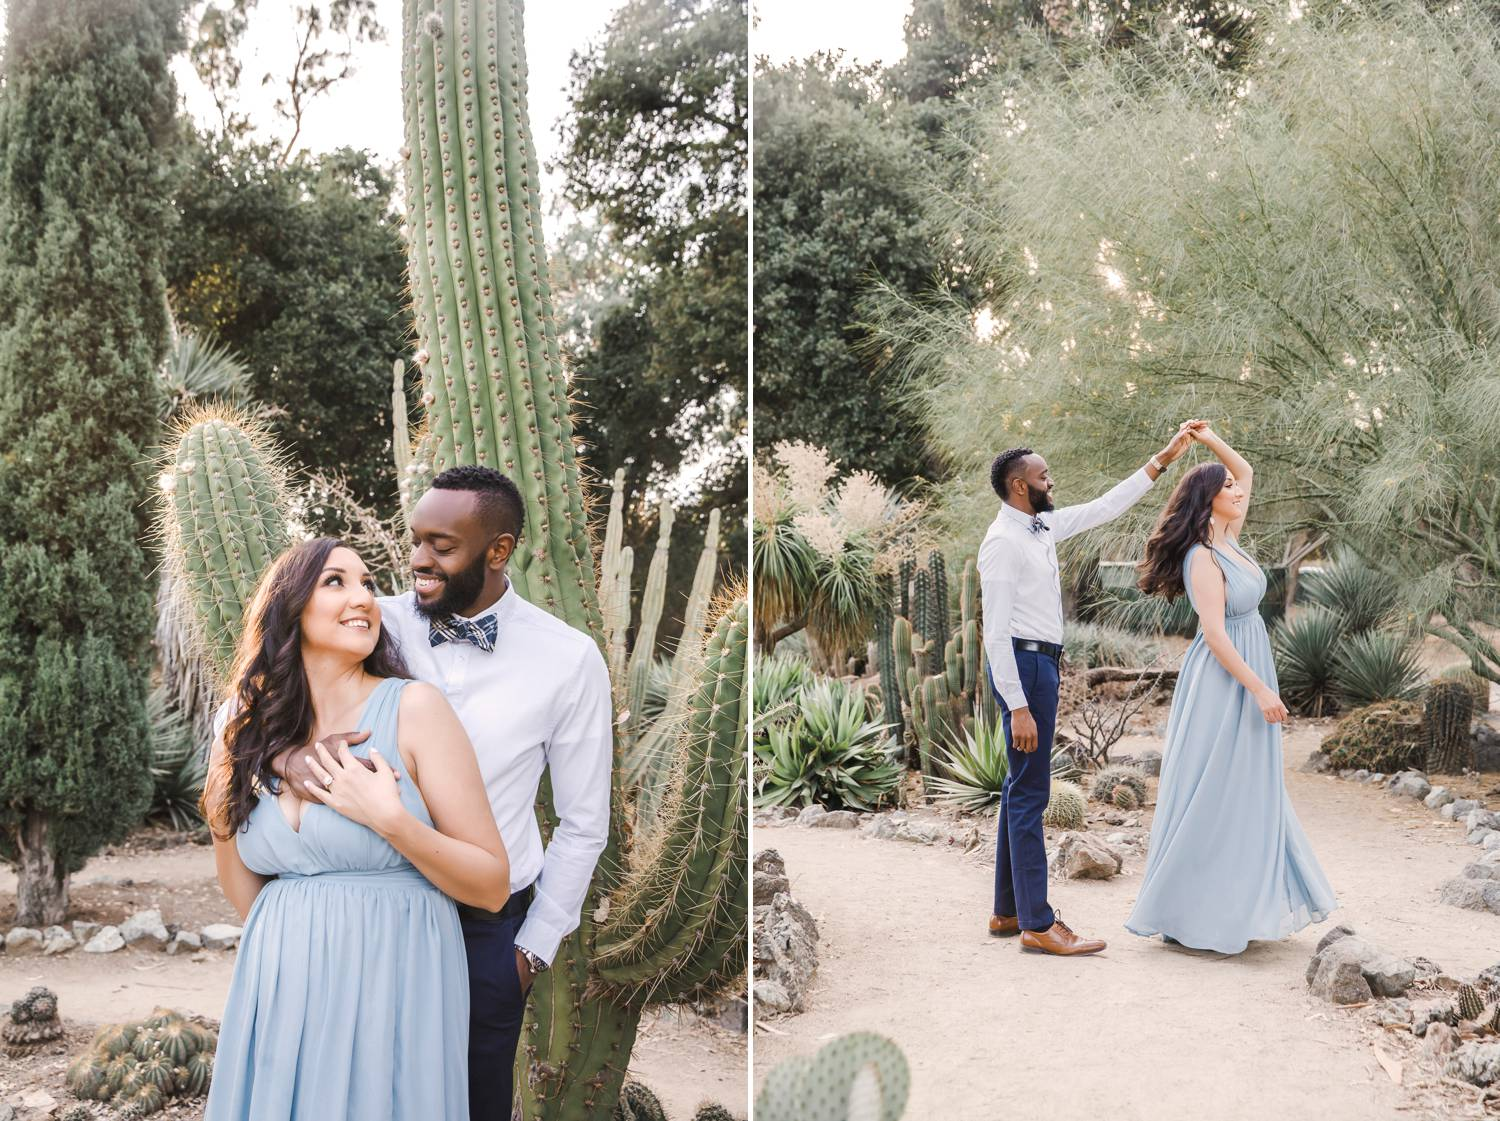 A couple hugs and twirls in a cactus garden